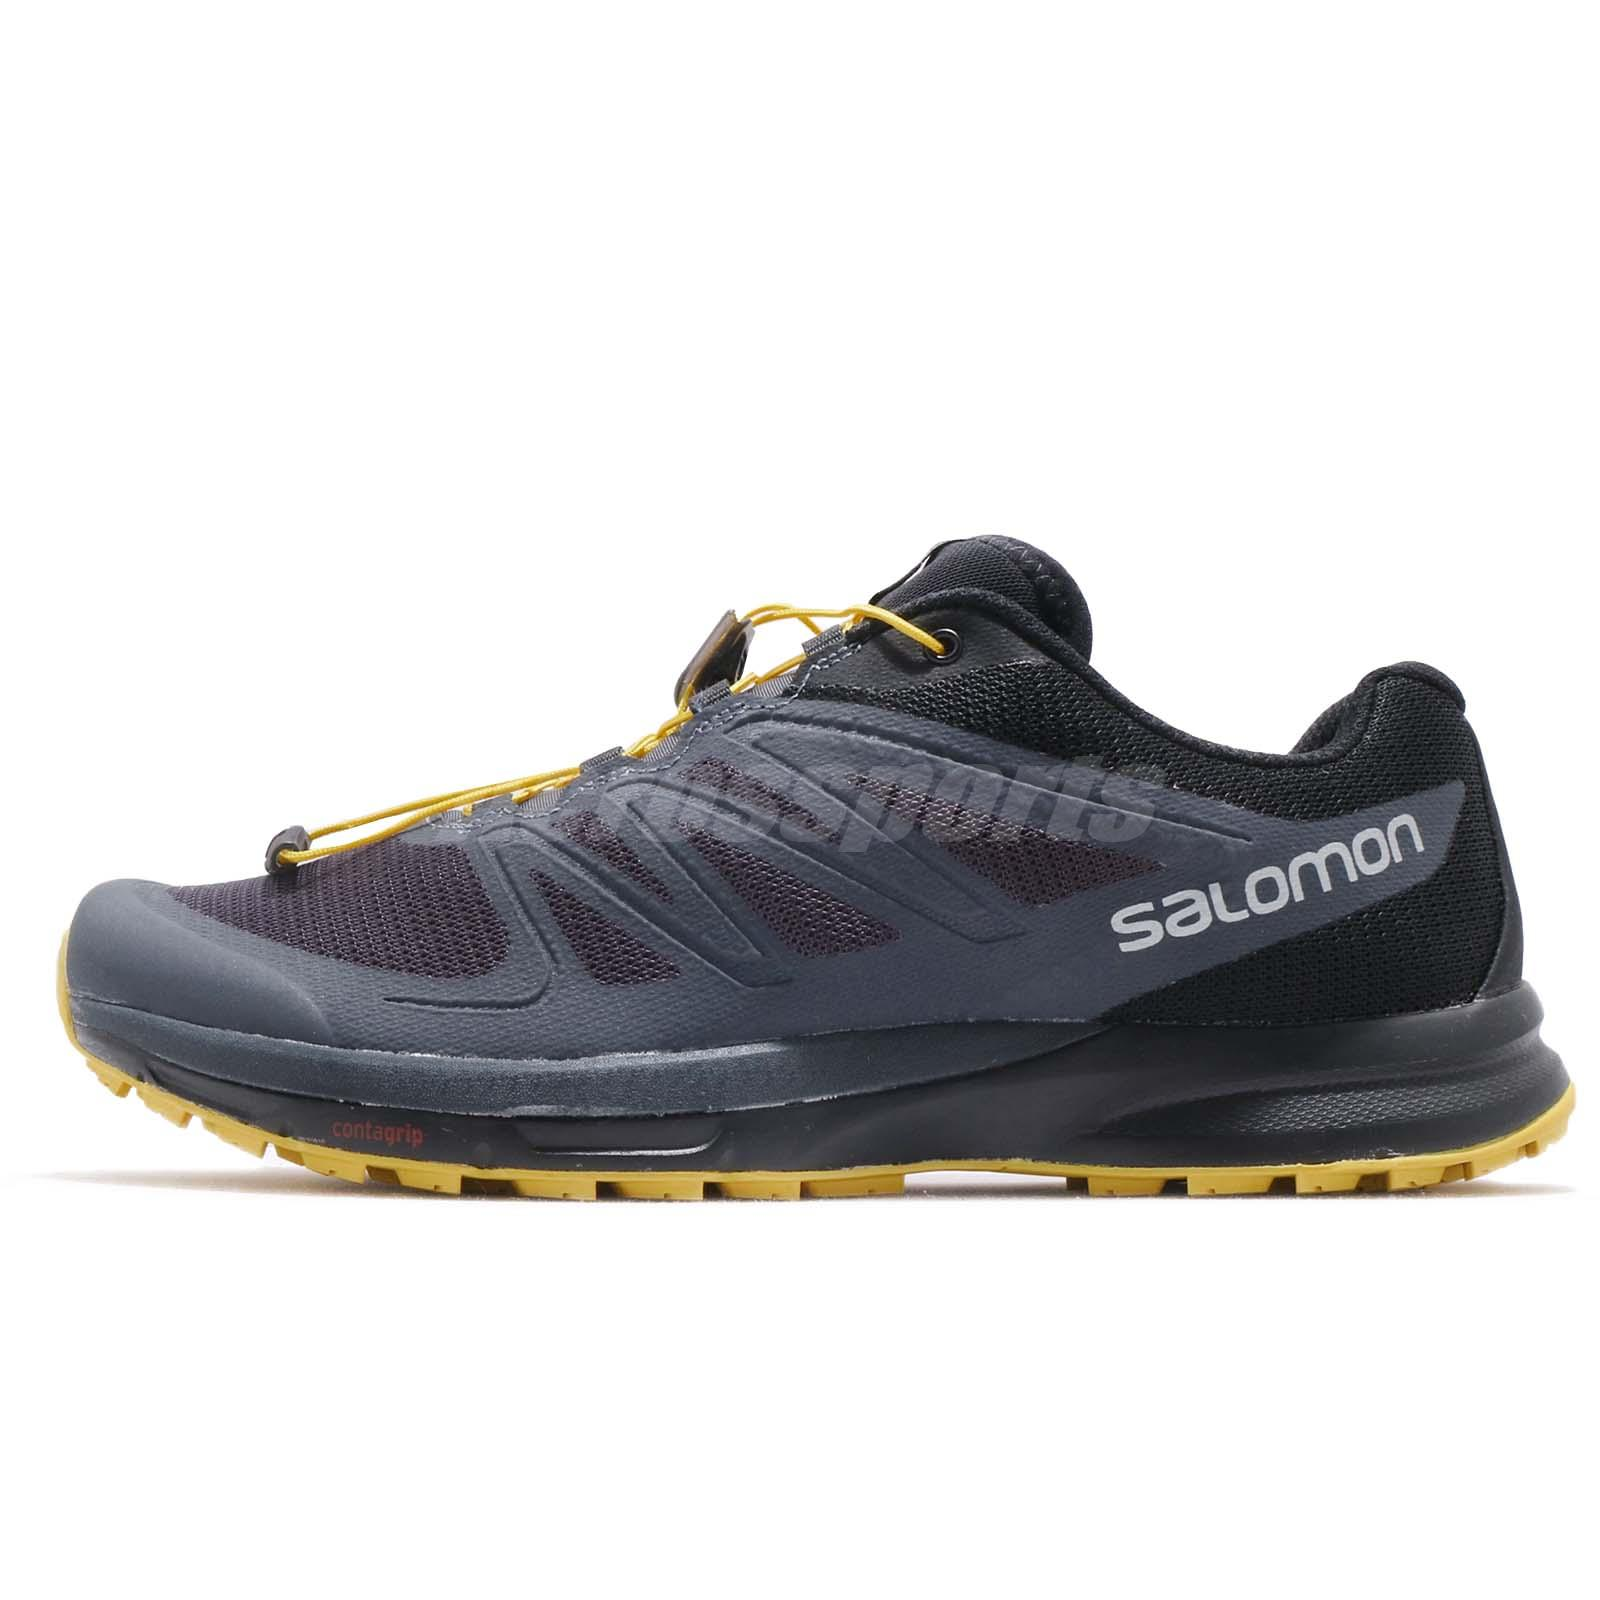 b77fb3f7 Details about Salomon Sense Pro 2 Grey Black Yellow Men Trail Running Shoes  Sneakers L39250300